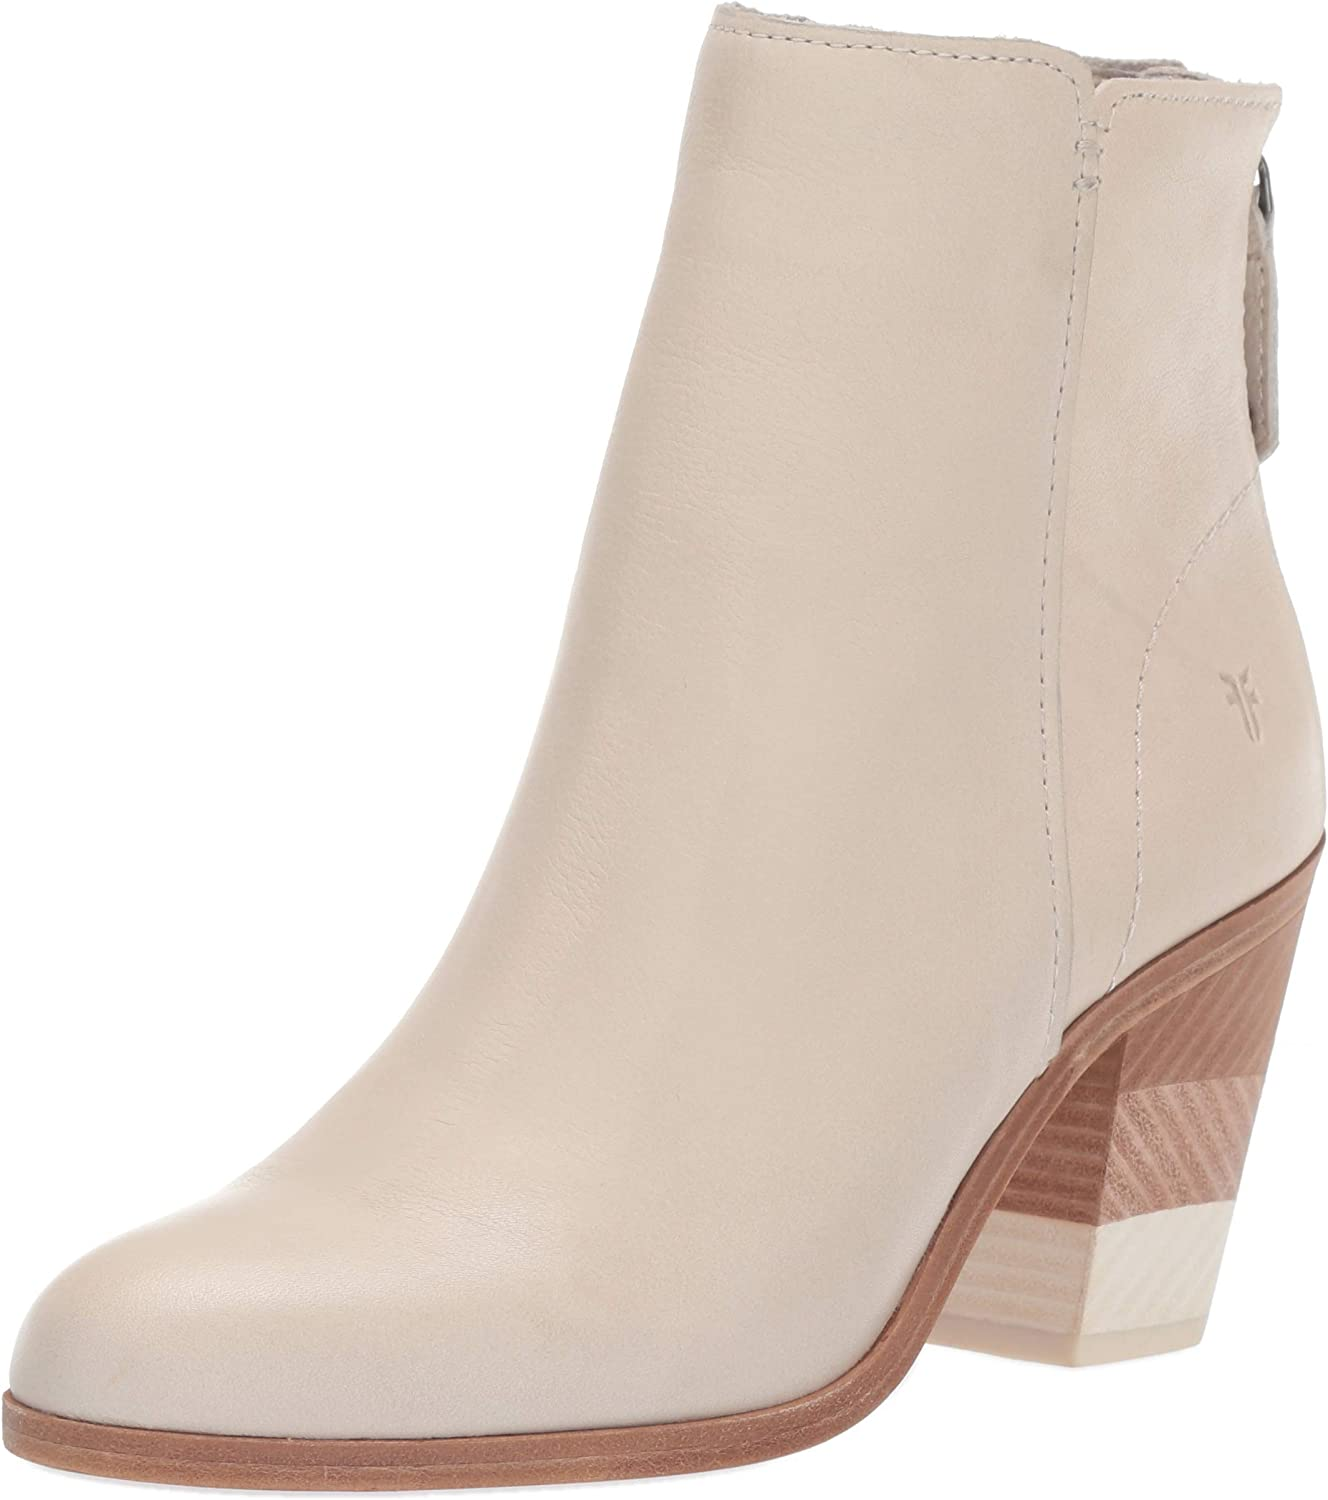 Frye Womens Cameron Bootie Ankle Boot